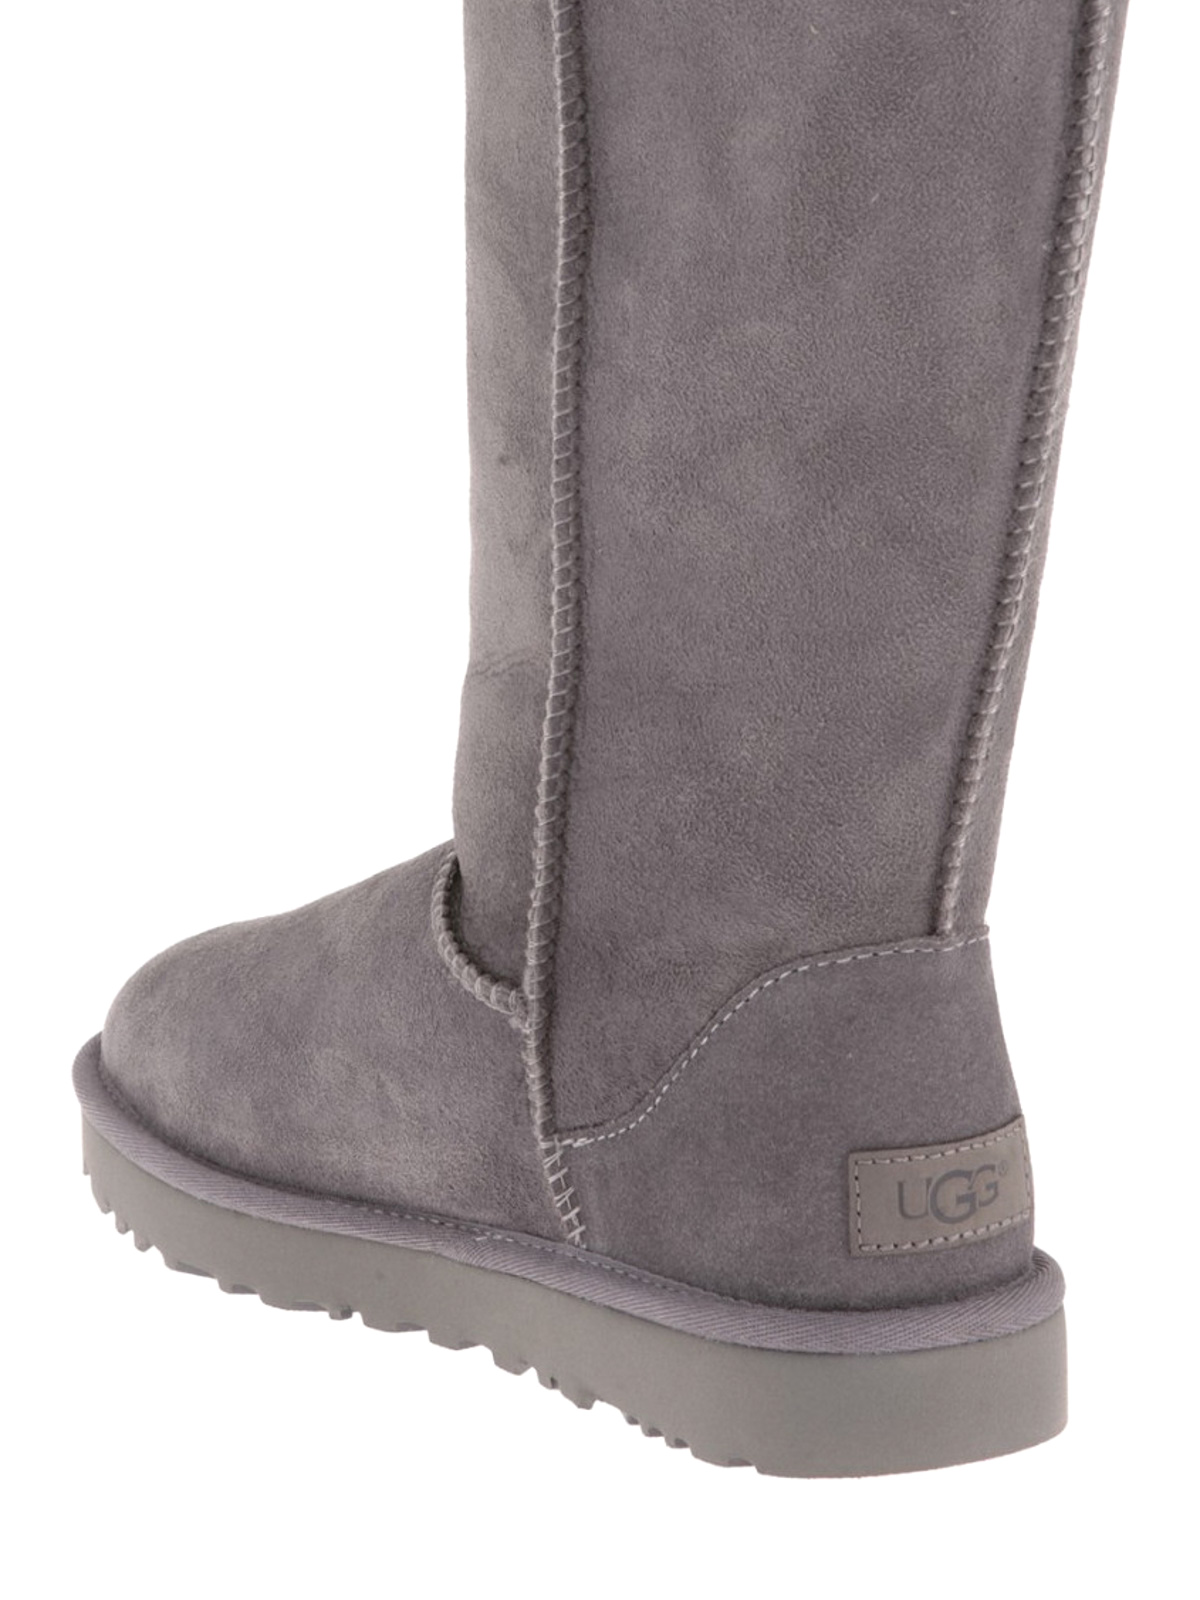 Pink Genuine Classic Tall Ugg Boots Division Of Global